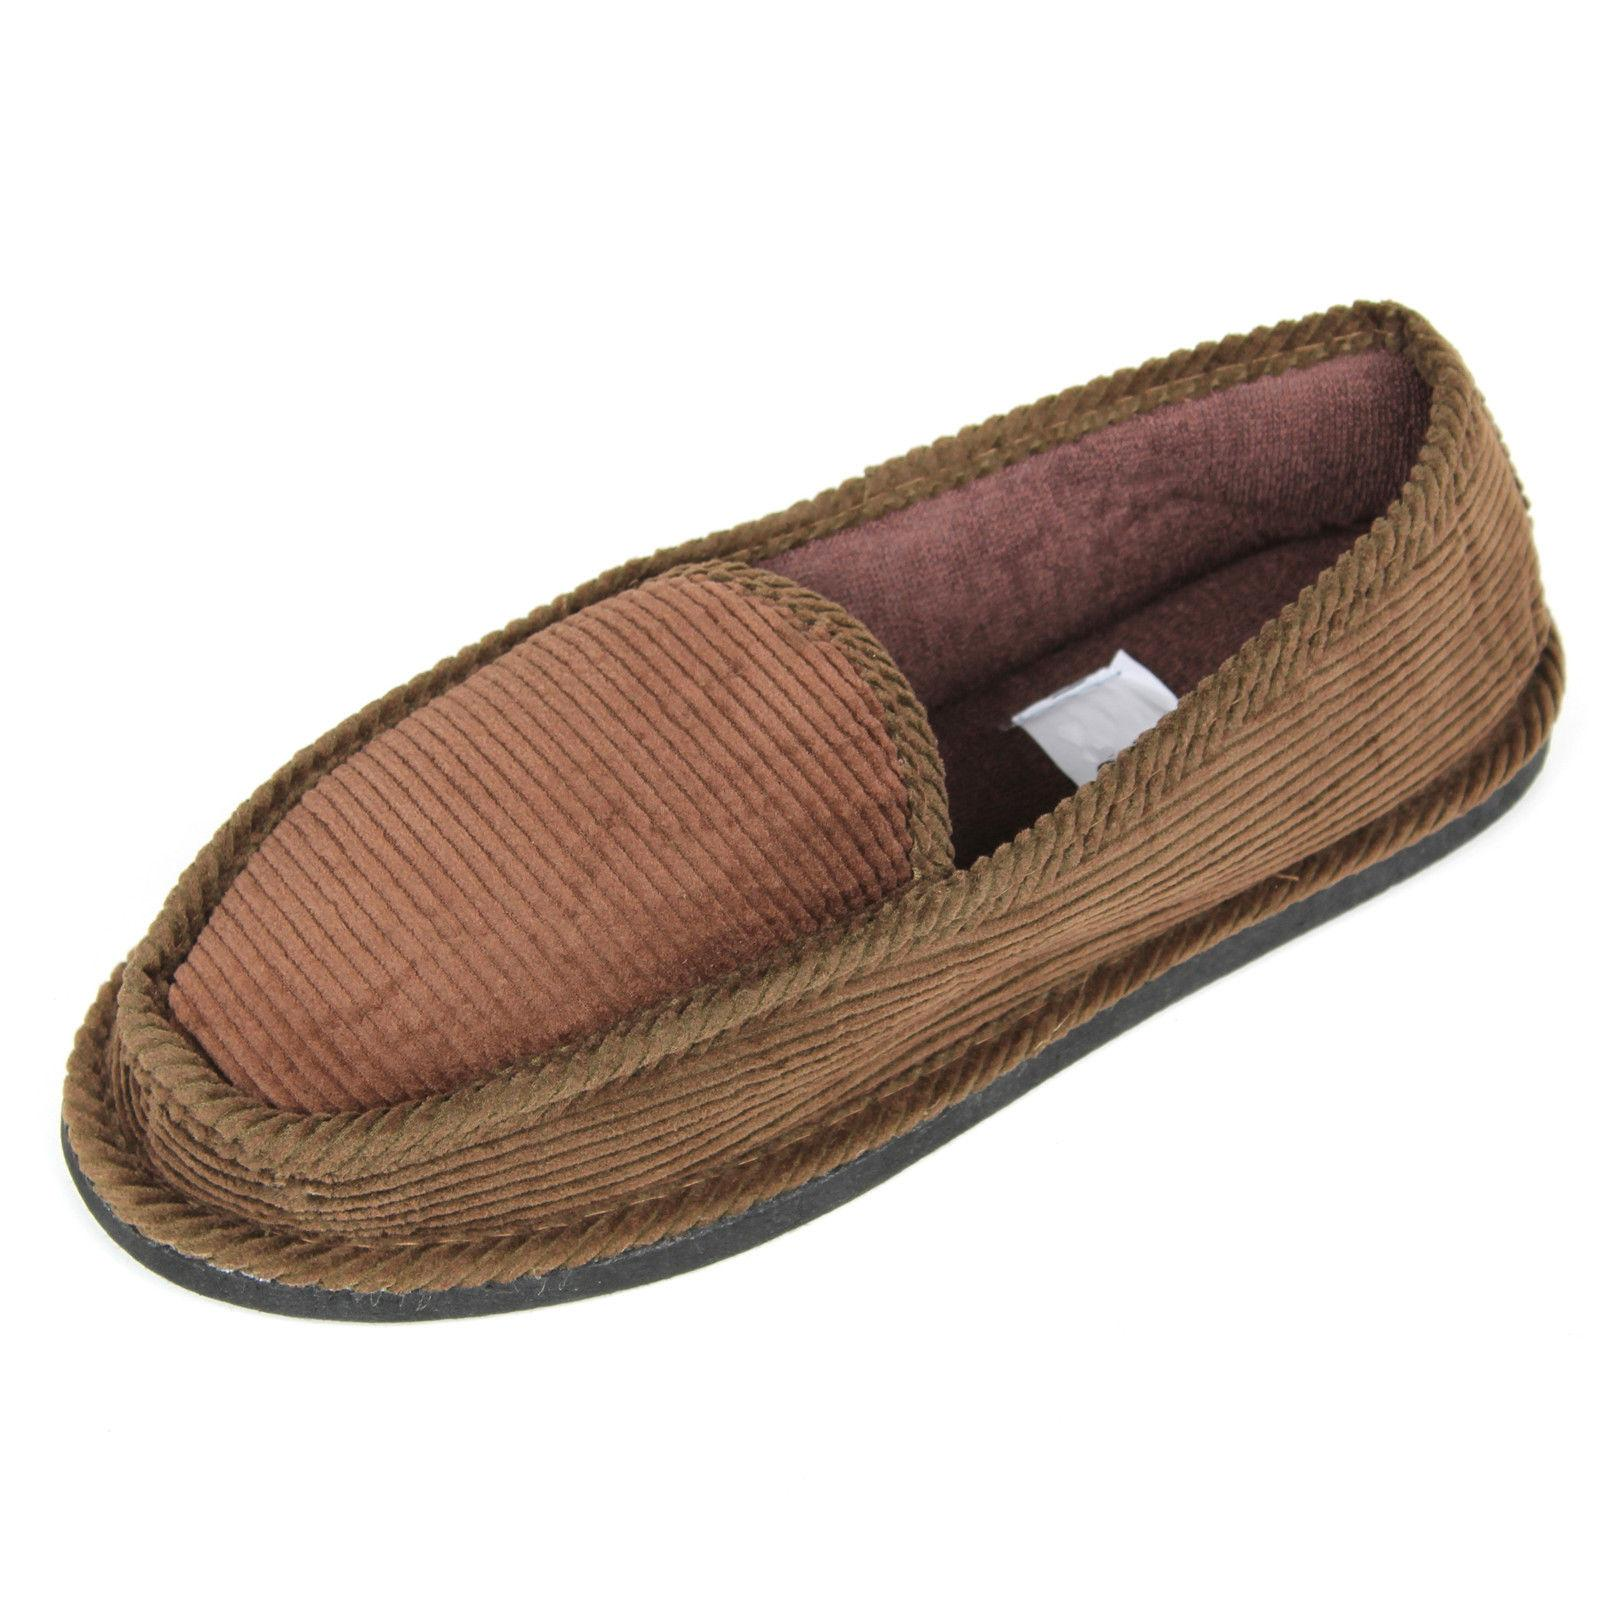 New Mens Slippers Corduroy Slip-on Shoes Size